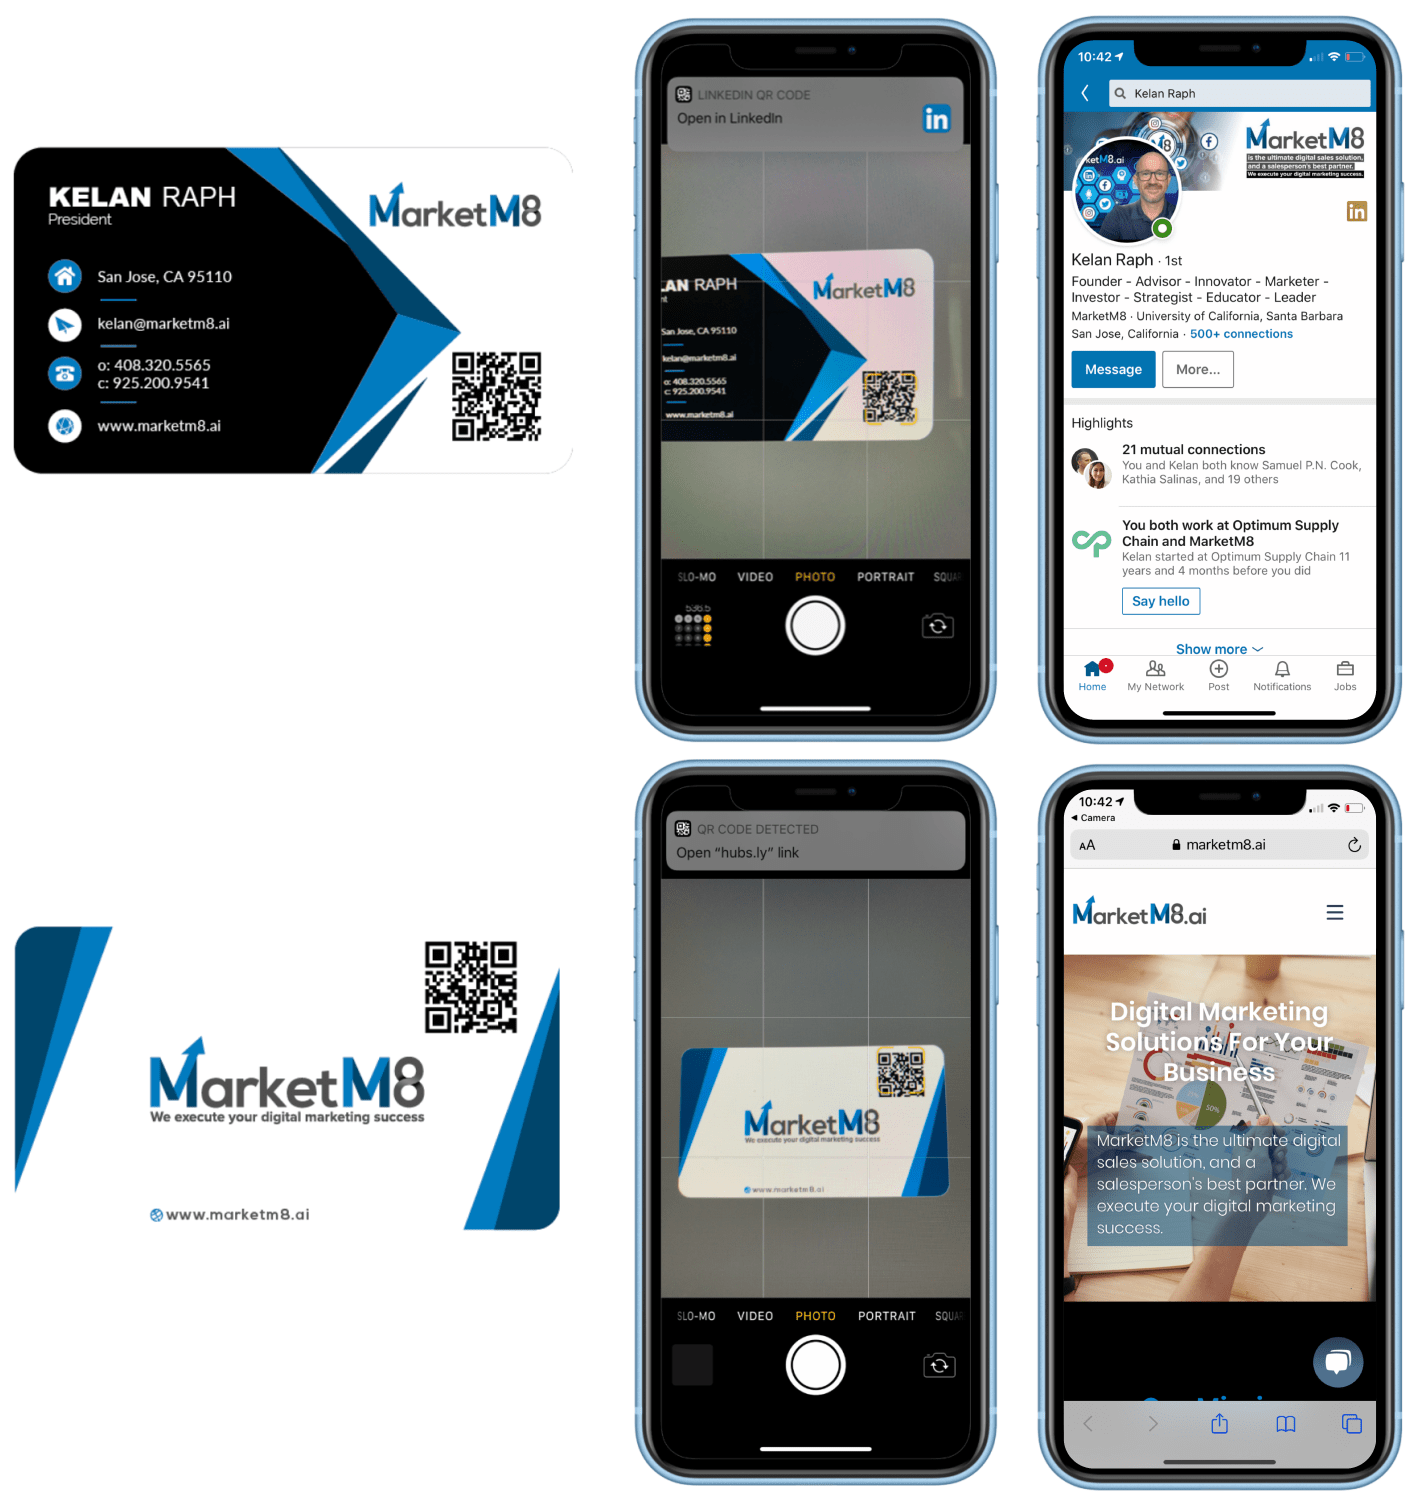 MarketM8 business card scannin process and end result